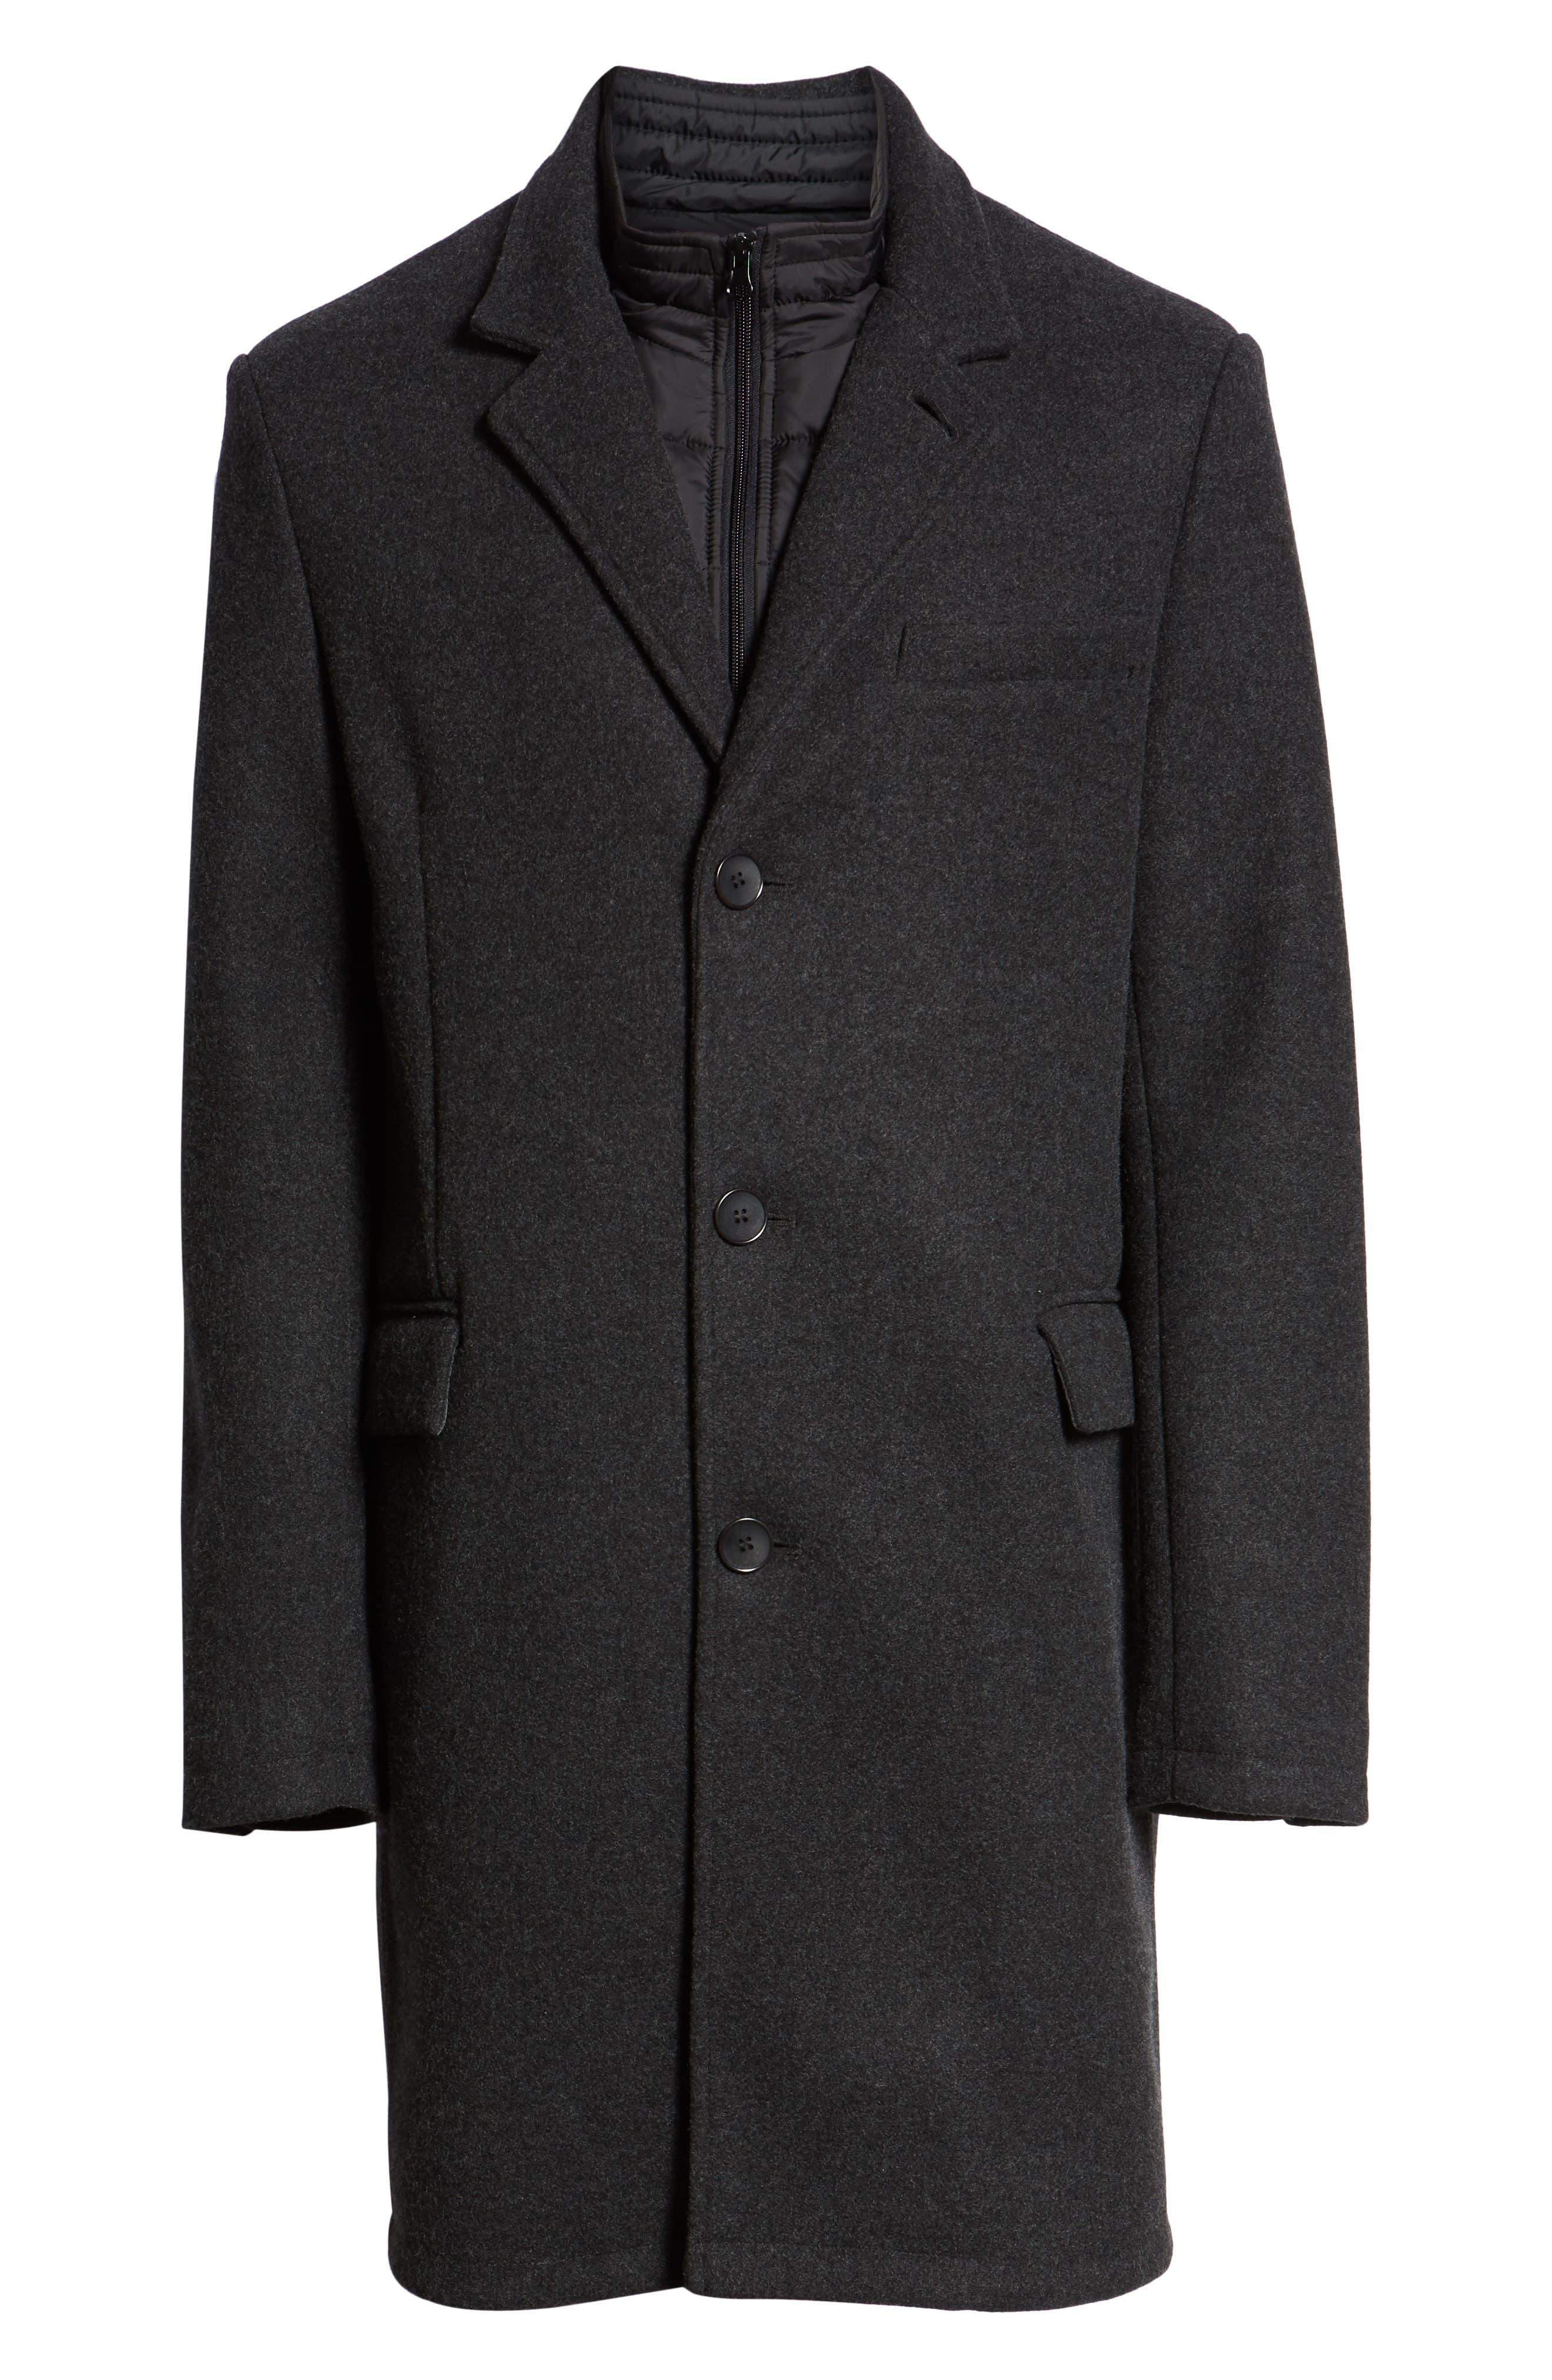 Westcott Wool Car Coat,                             Alternate thumbnail 6, color,                             001